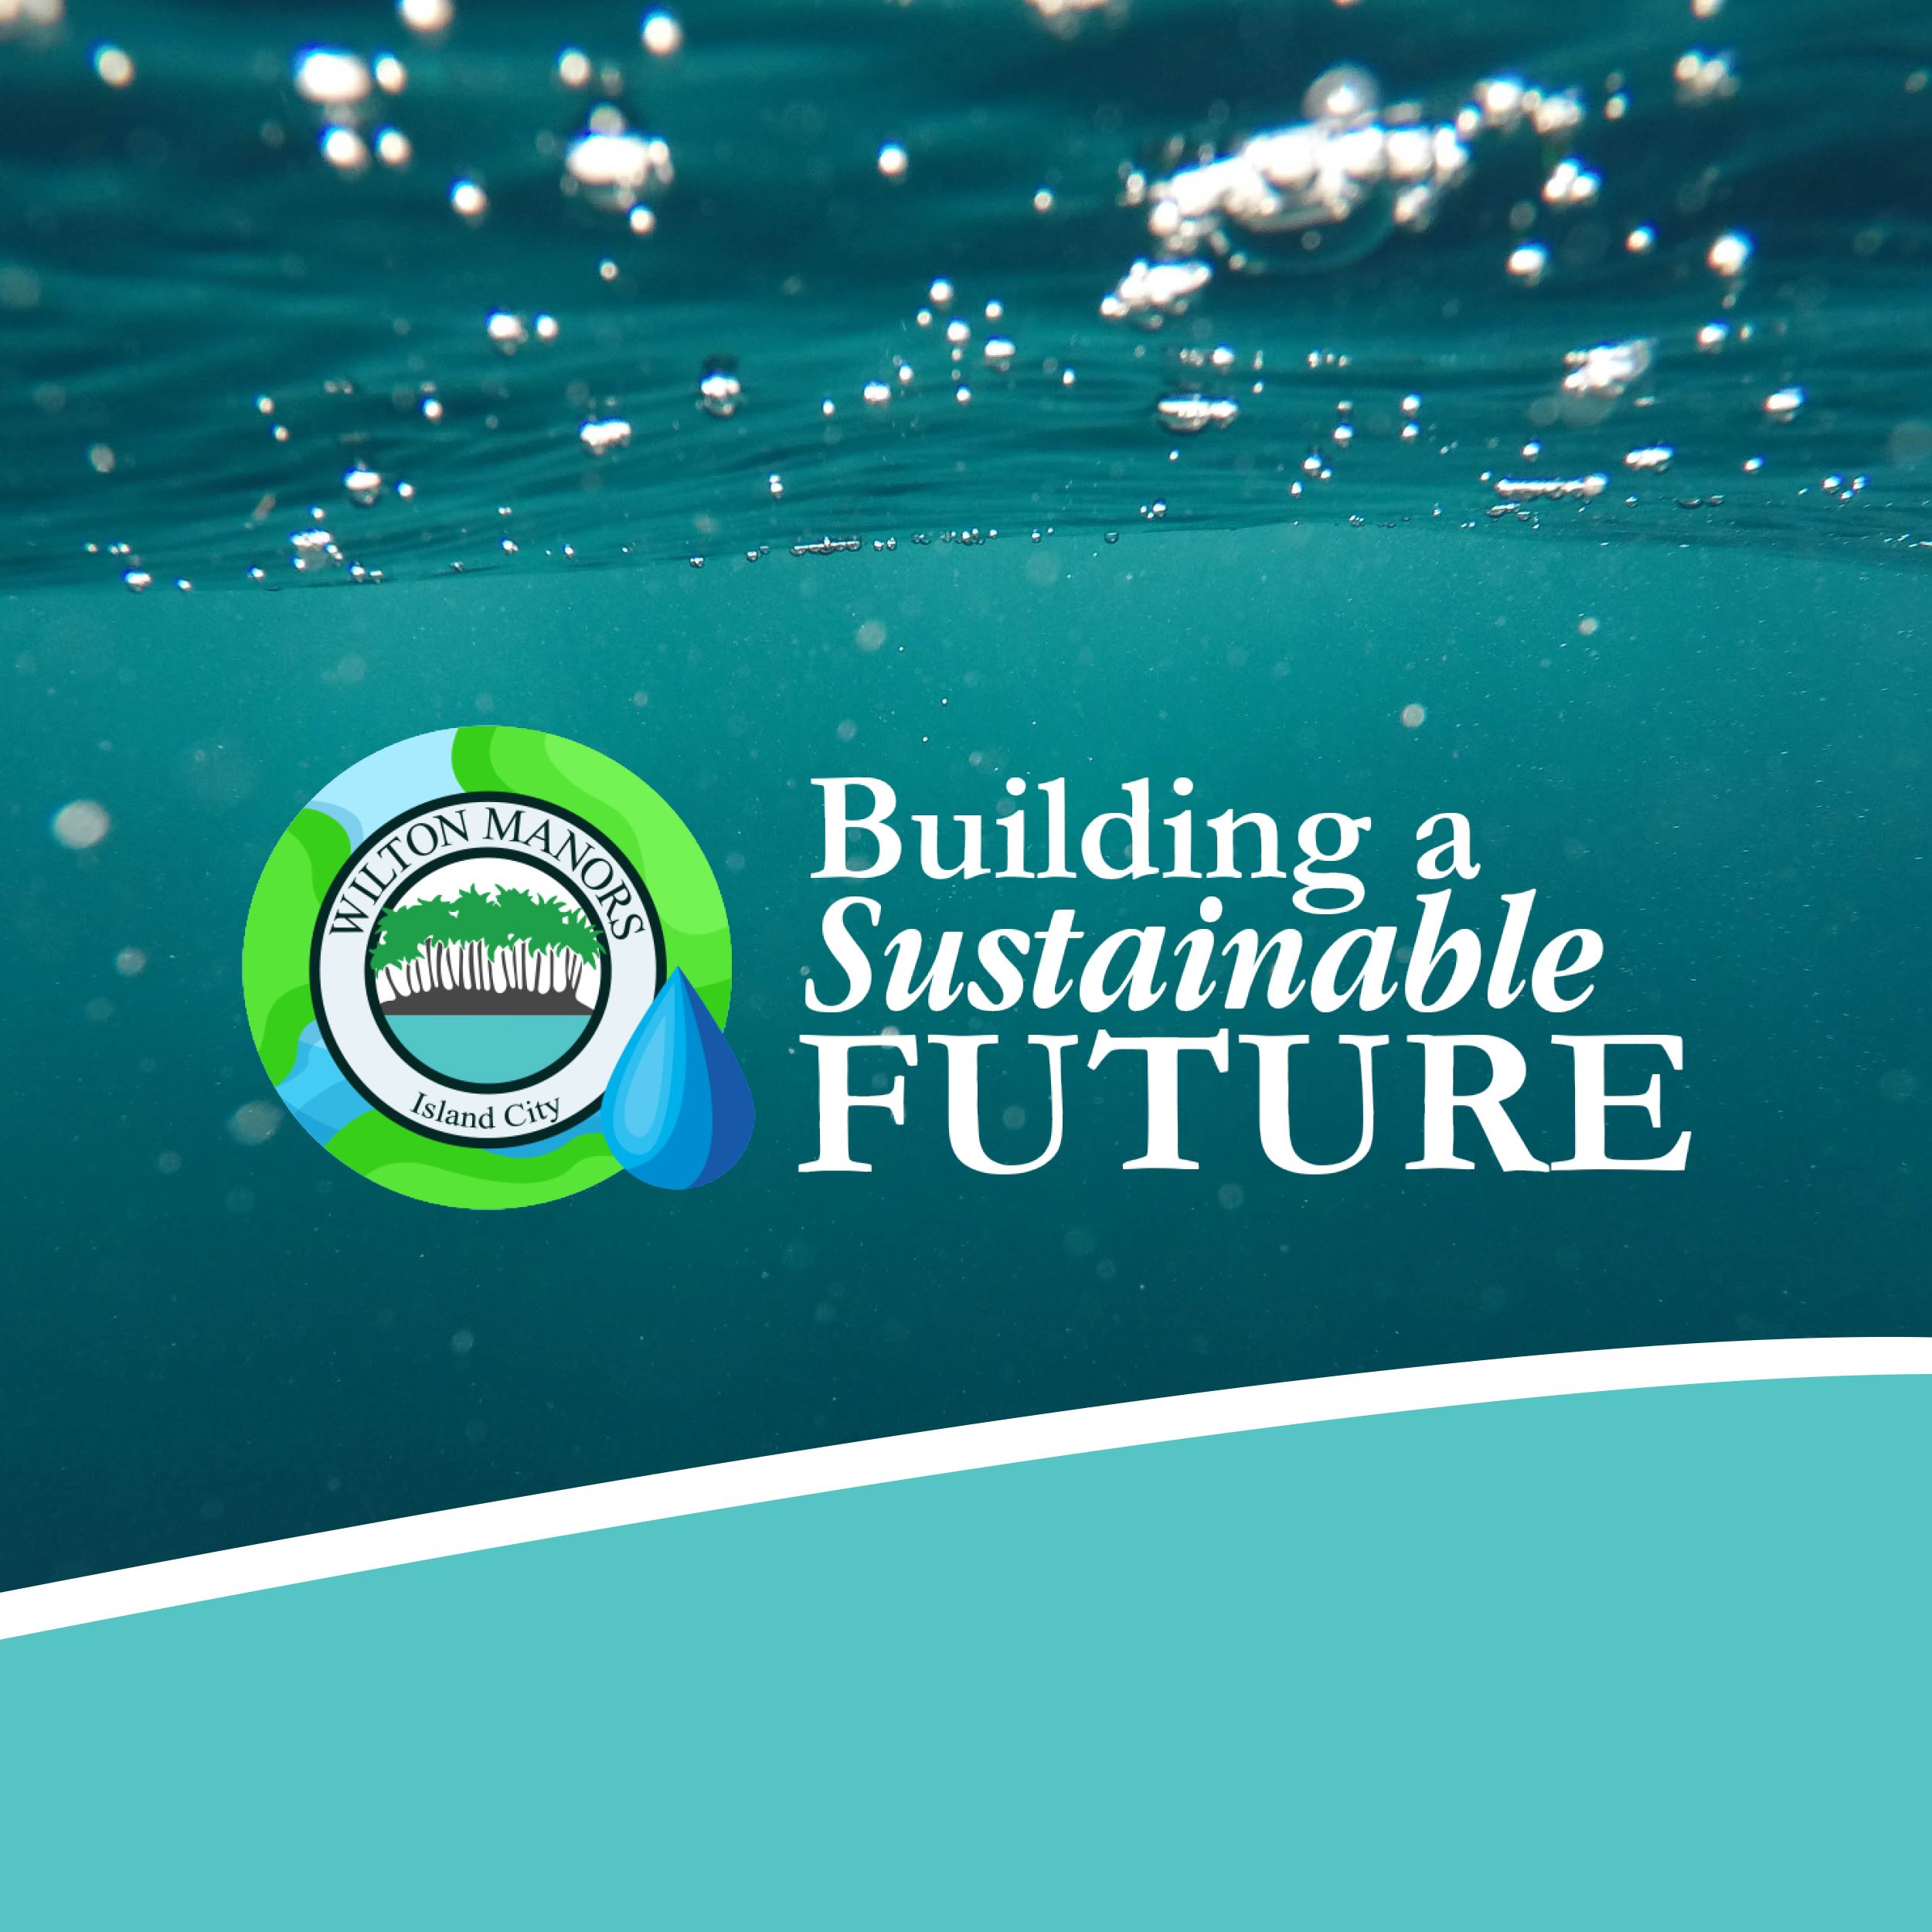 WM Building a Sustainable Future Image